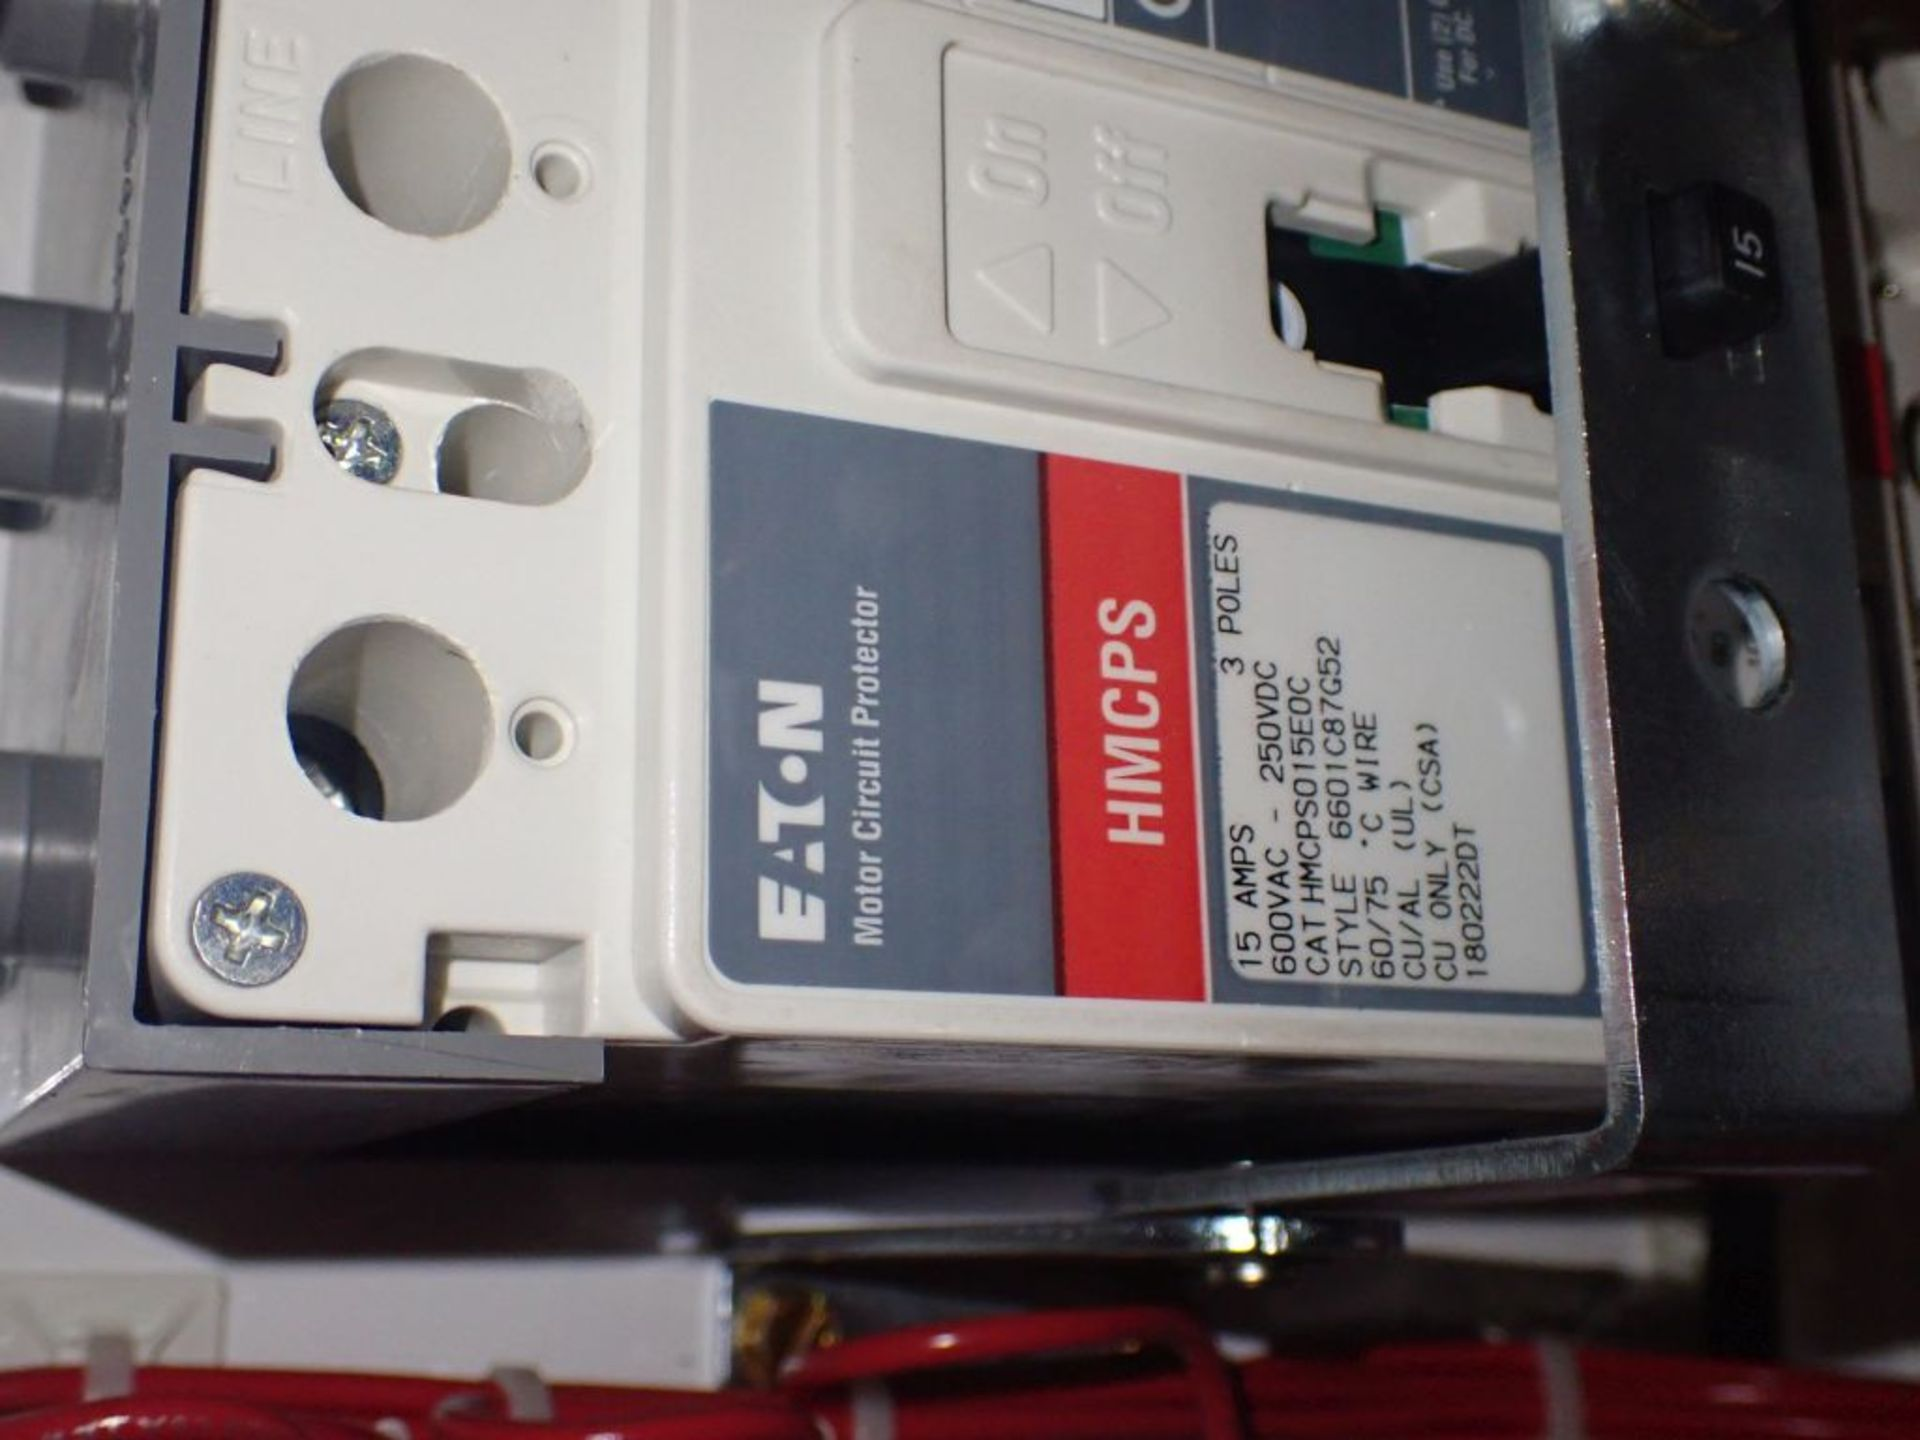 Eaton Freedom Flashgard Motor Control Center w/Components | (5) F206-15A-10HP; (4) F206-30A-10HP; ( - Image 19 of 84